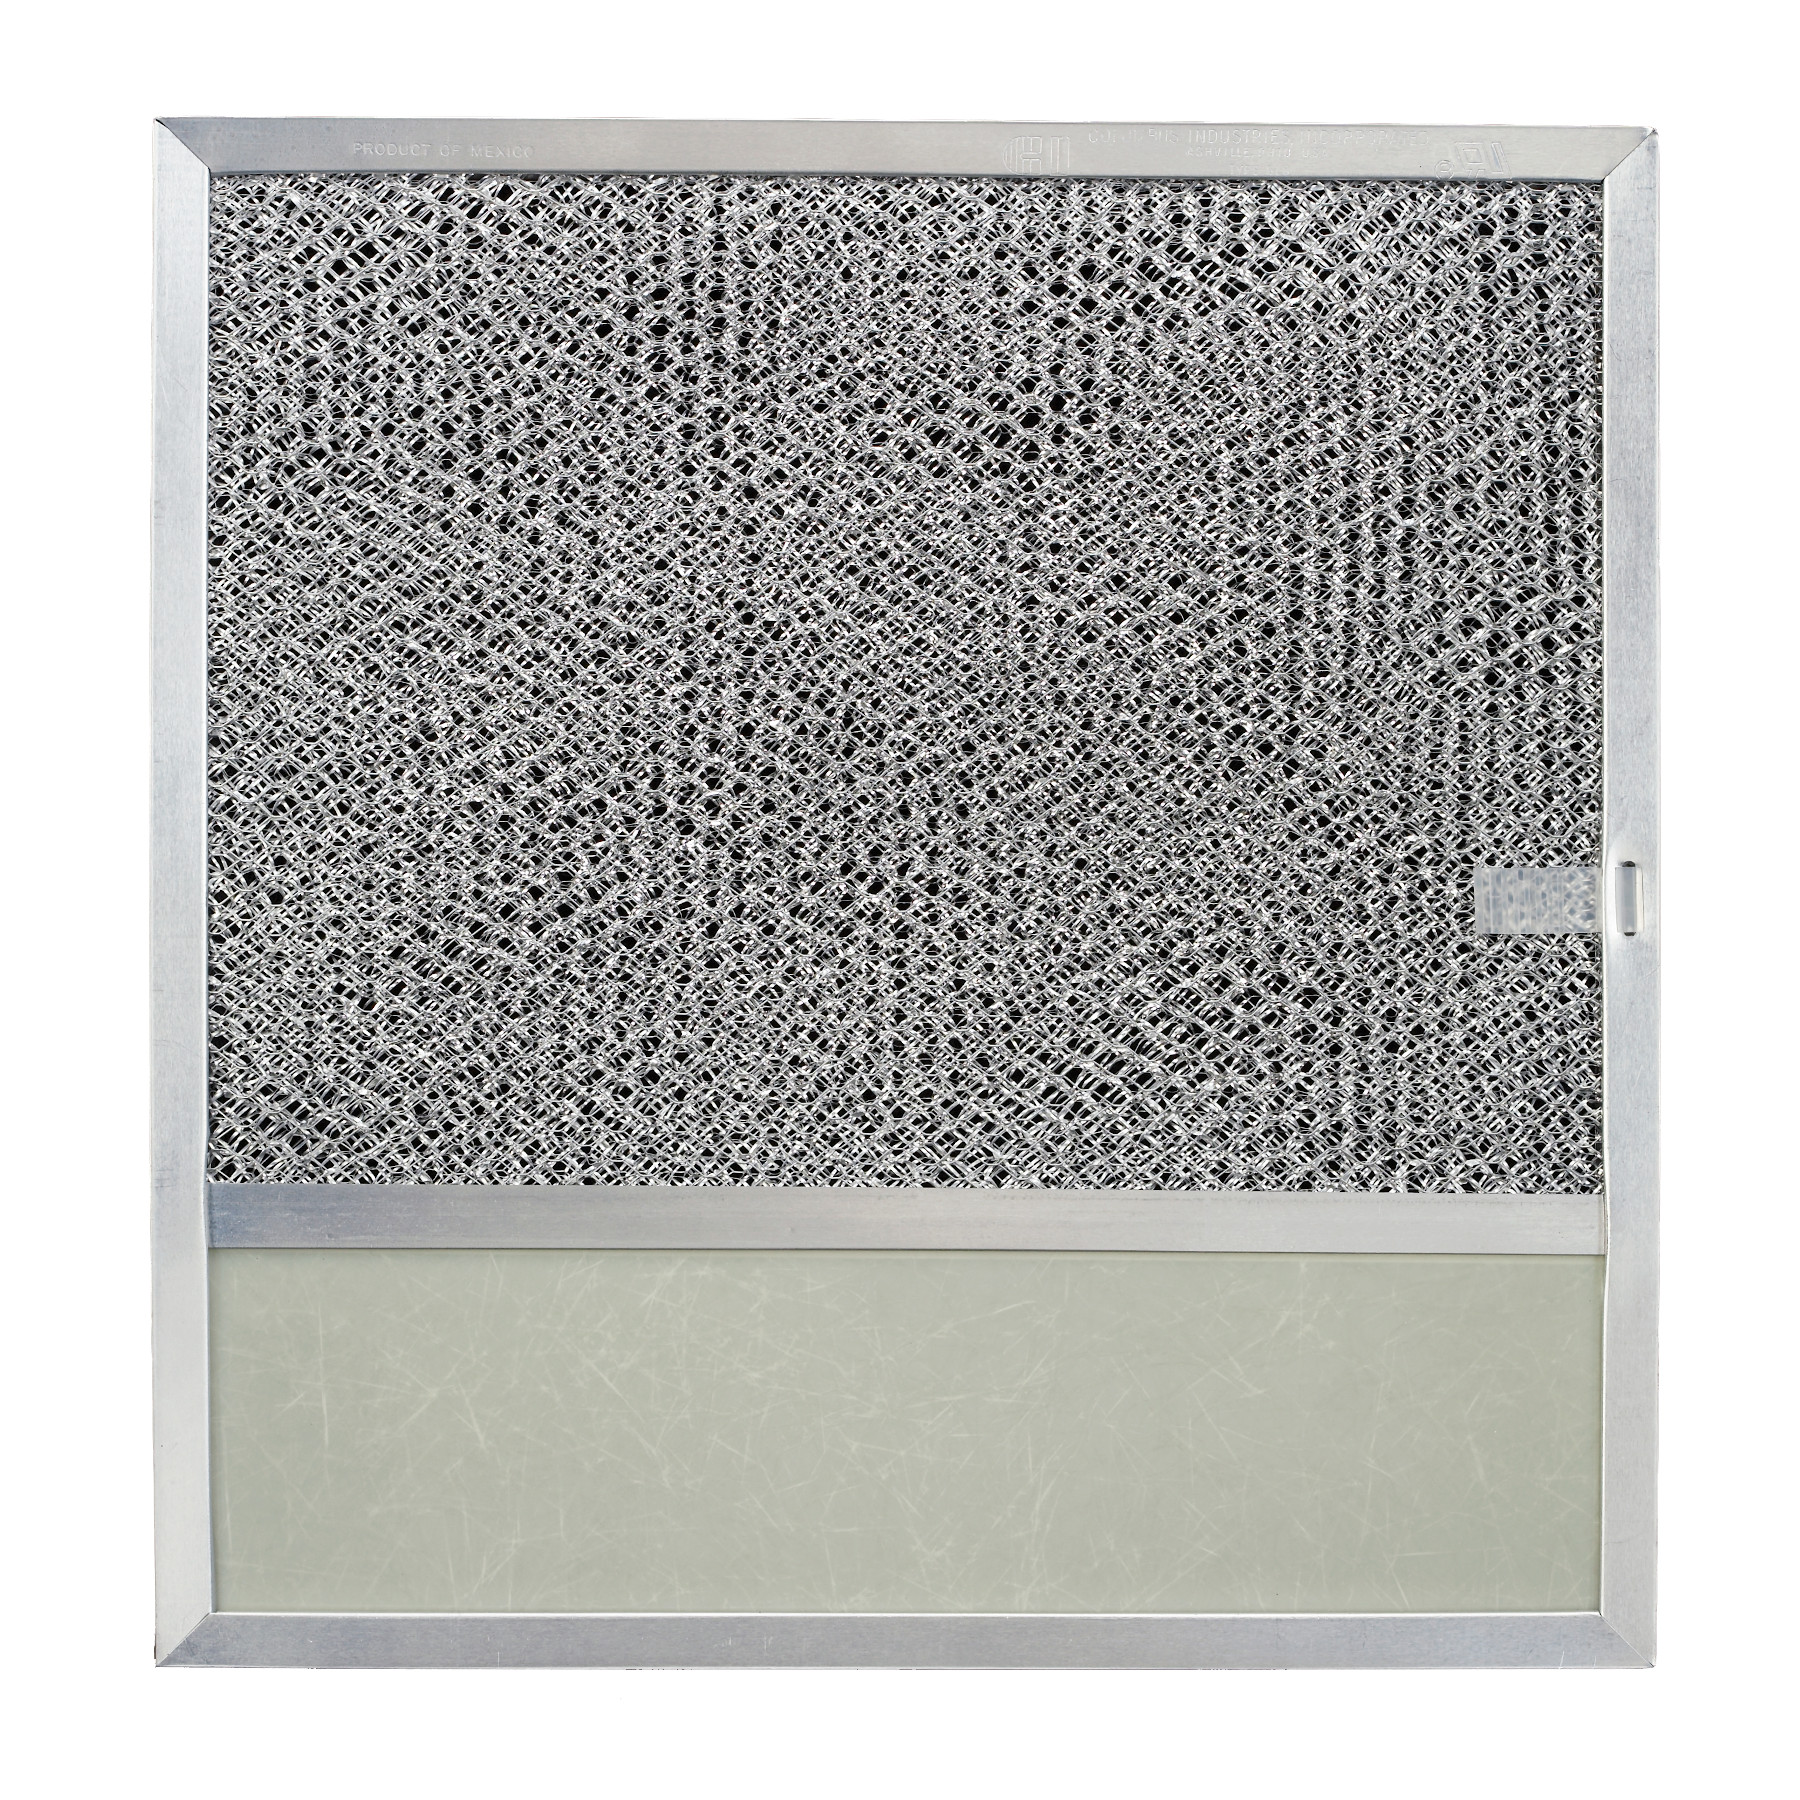 Aluminum Filter with Light Lens, 11-3/4-Inch x 13-7/16-Inch